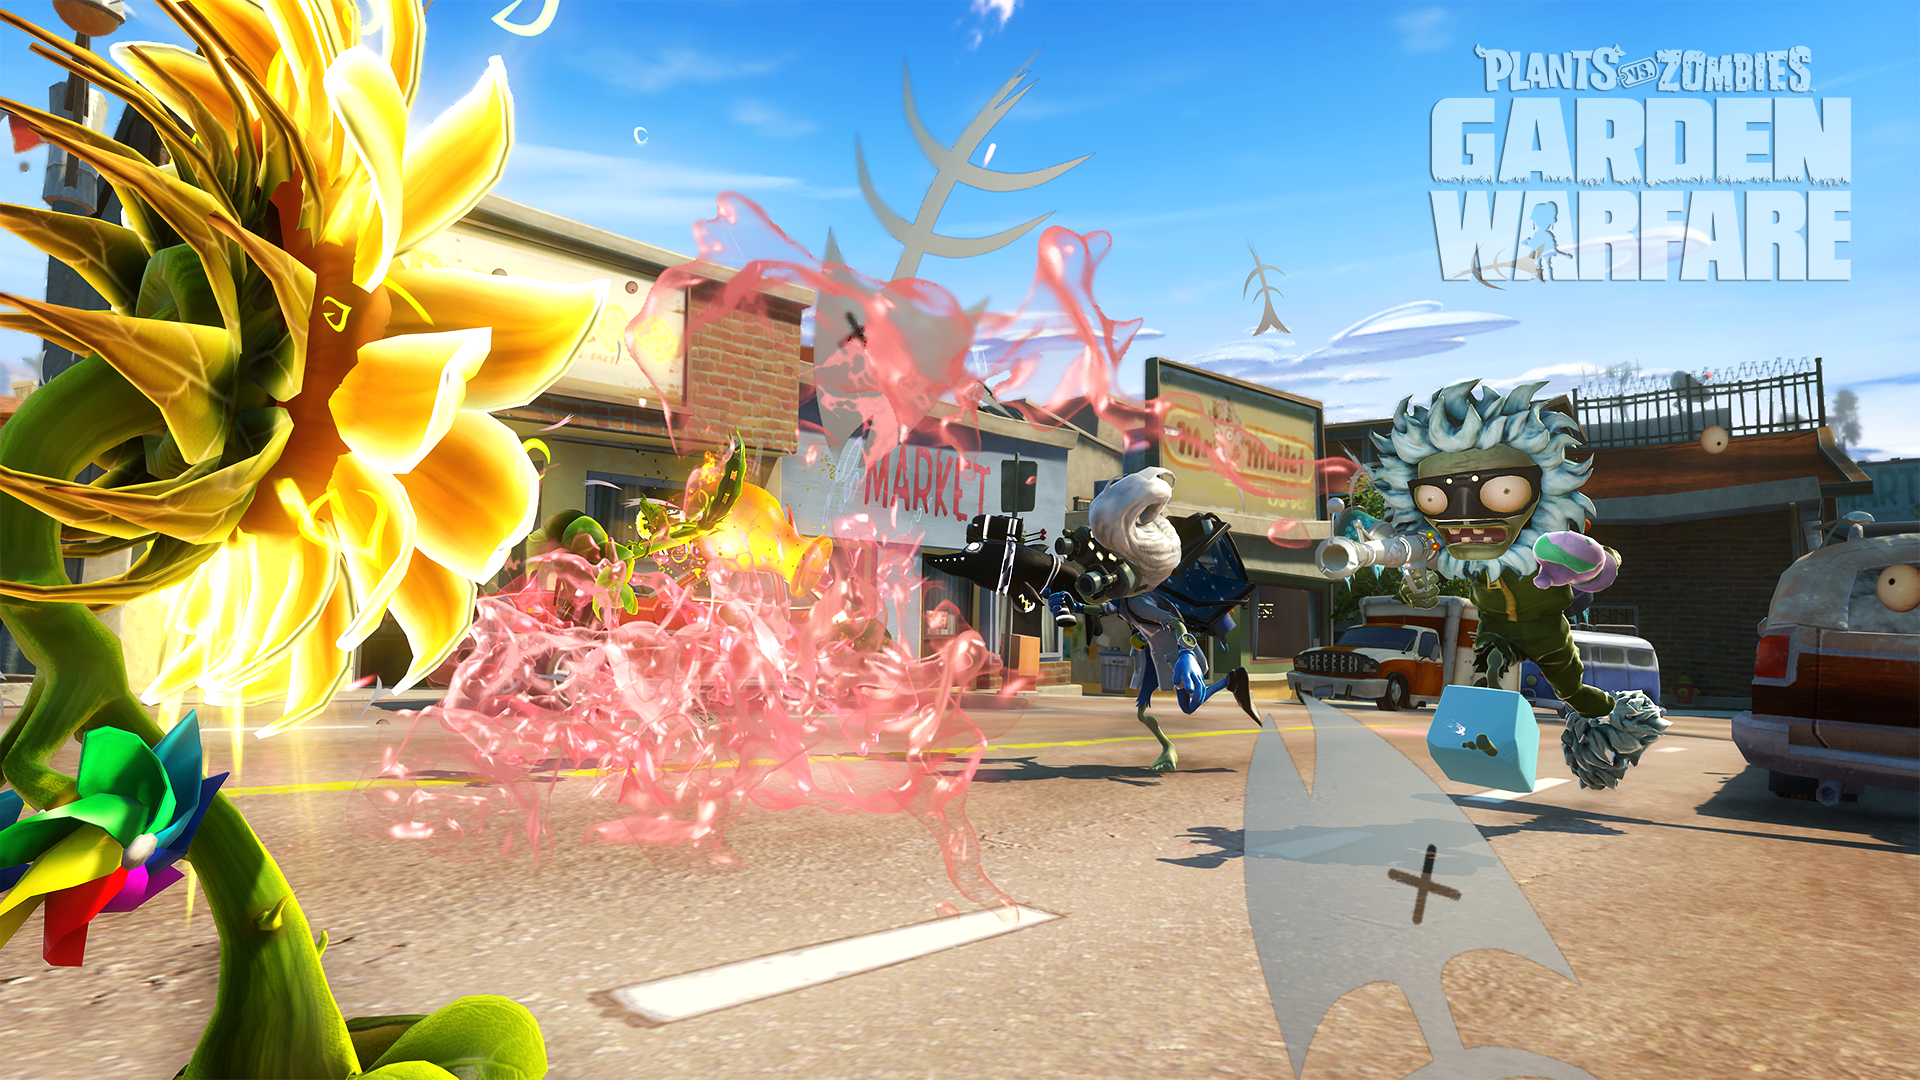 Plants vs zombies garden warfare xbox one review guns - Plants vs zombies garden warfare xbox one ...